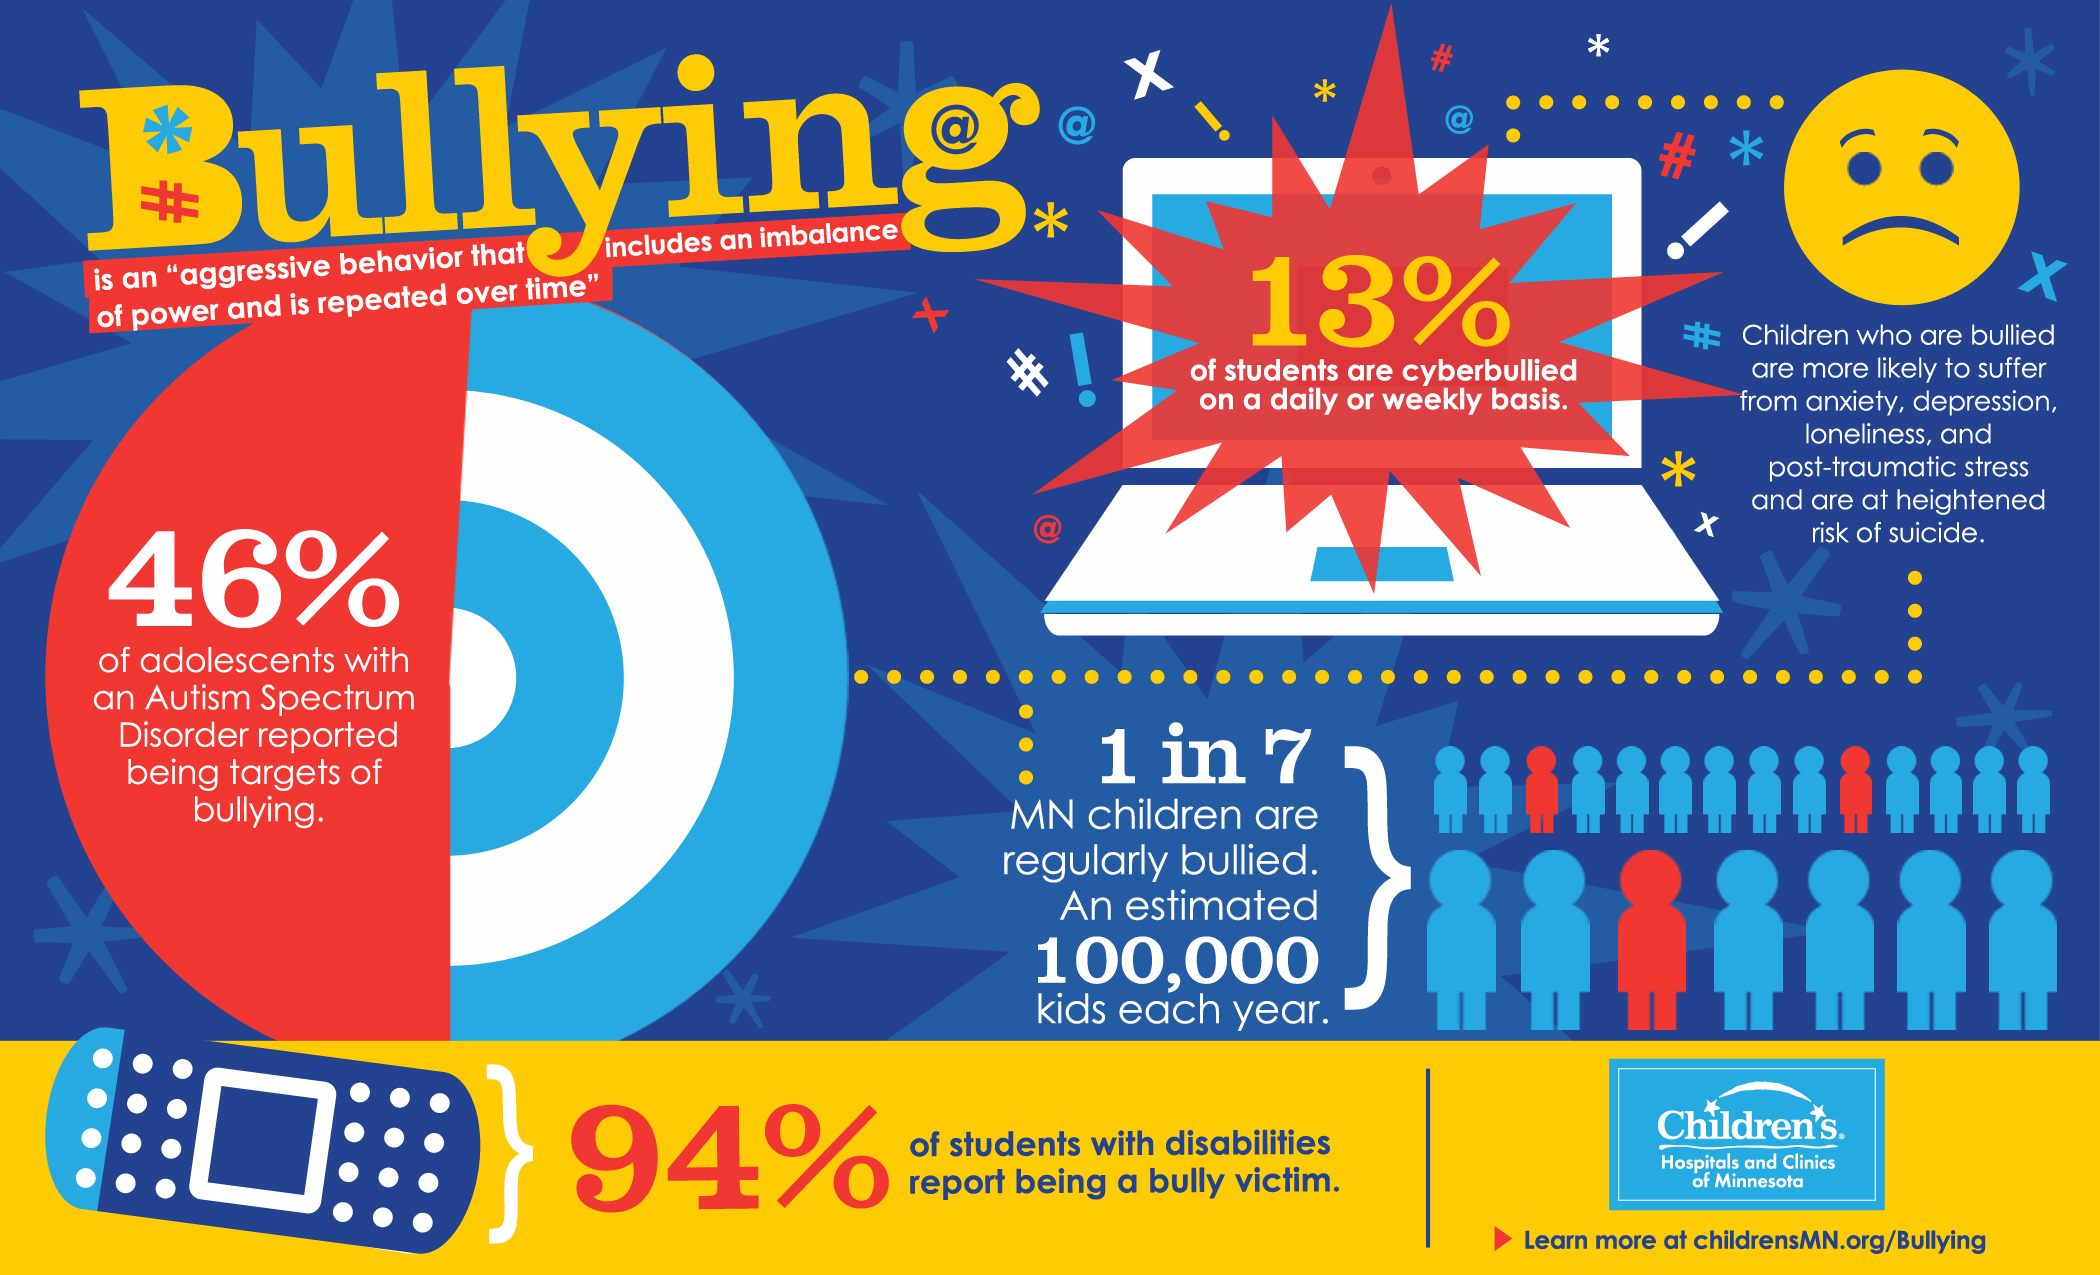 Bullying What It Means For Kids Health